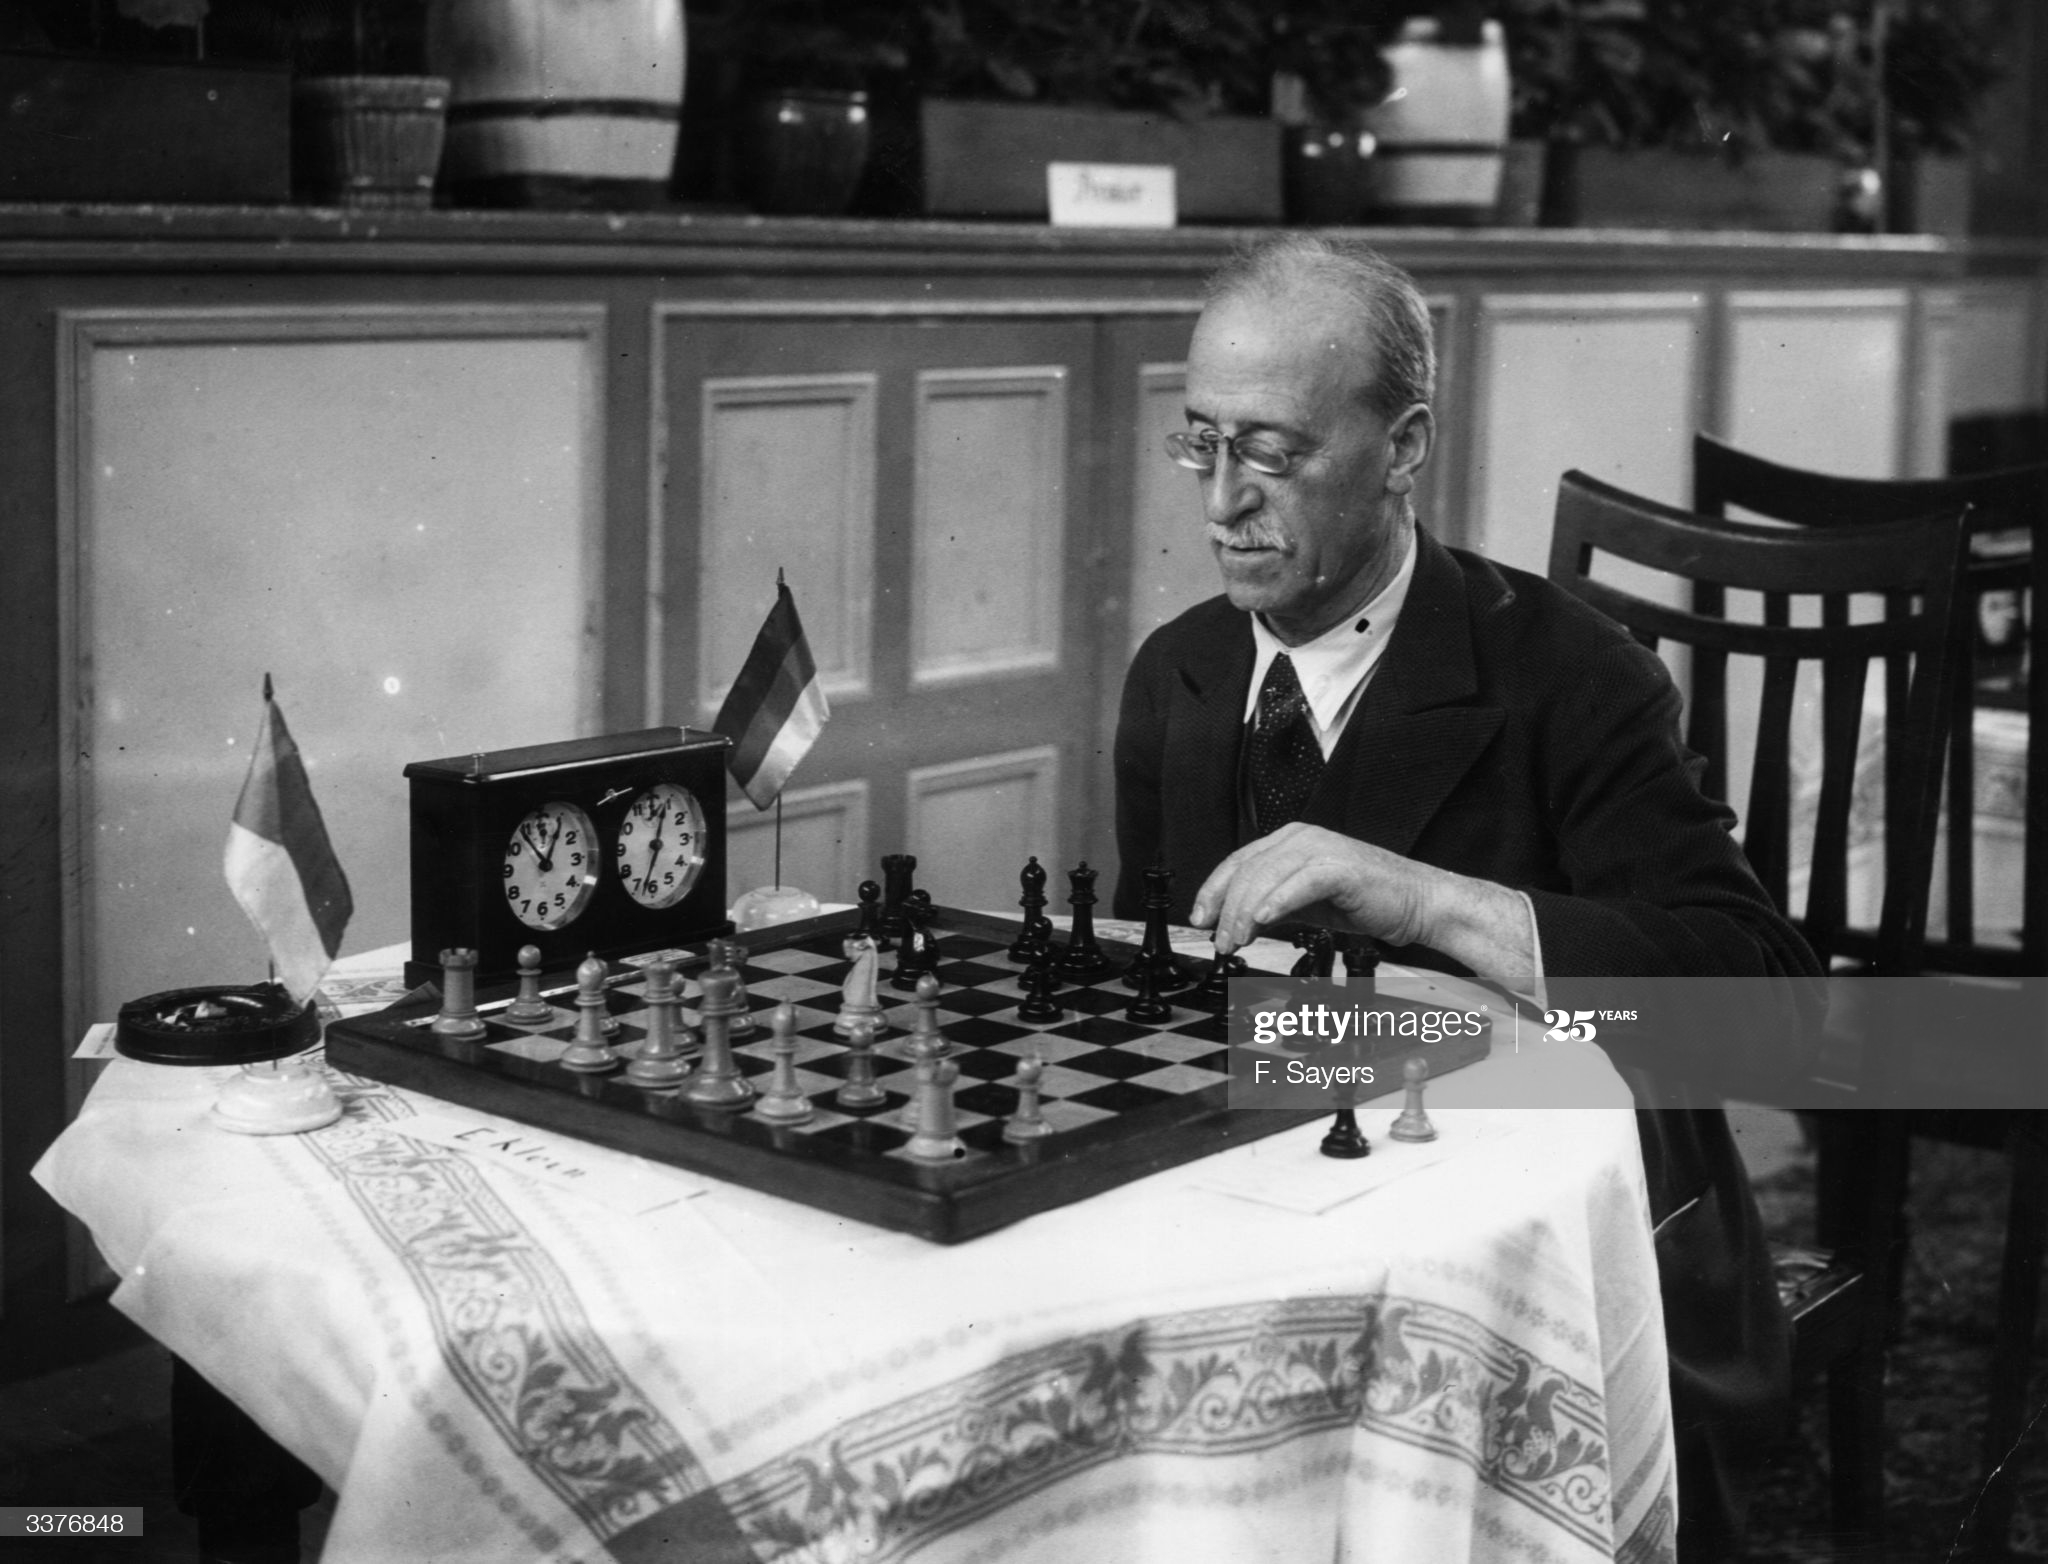 24th April 1935: J Mieses of Germany in play against PS Milner-Barry during the Premier Tournament of the Kent County Chess Association in the Grand Hotel, Margate. (Photo by F. Sayers/Topical Press Agency/Getty Images)